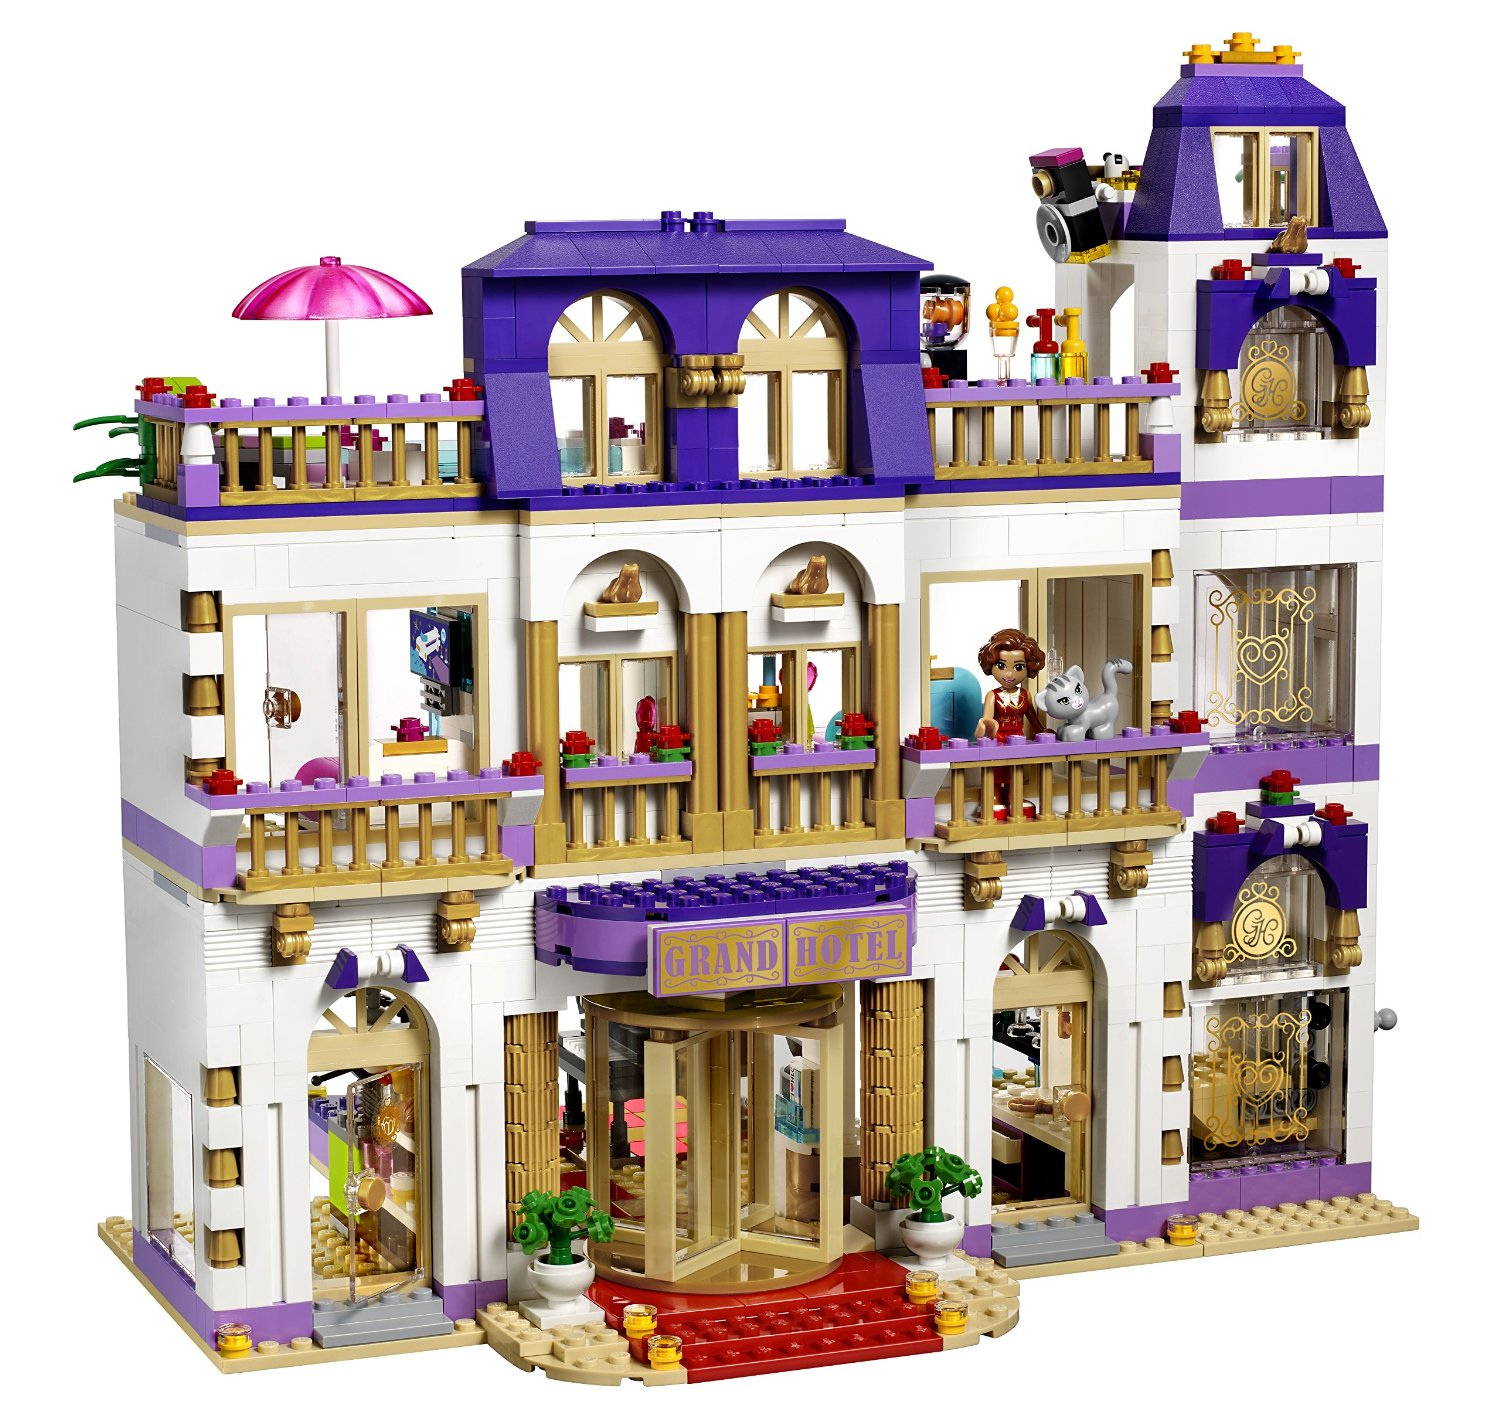 Lego Friends Piscina Lego Friends 41101 Il Grand Hotel Di Heartlake Ebay